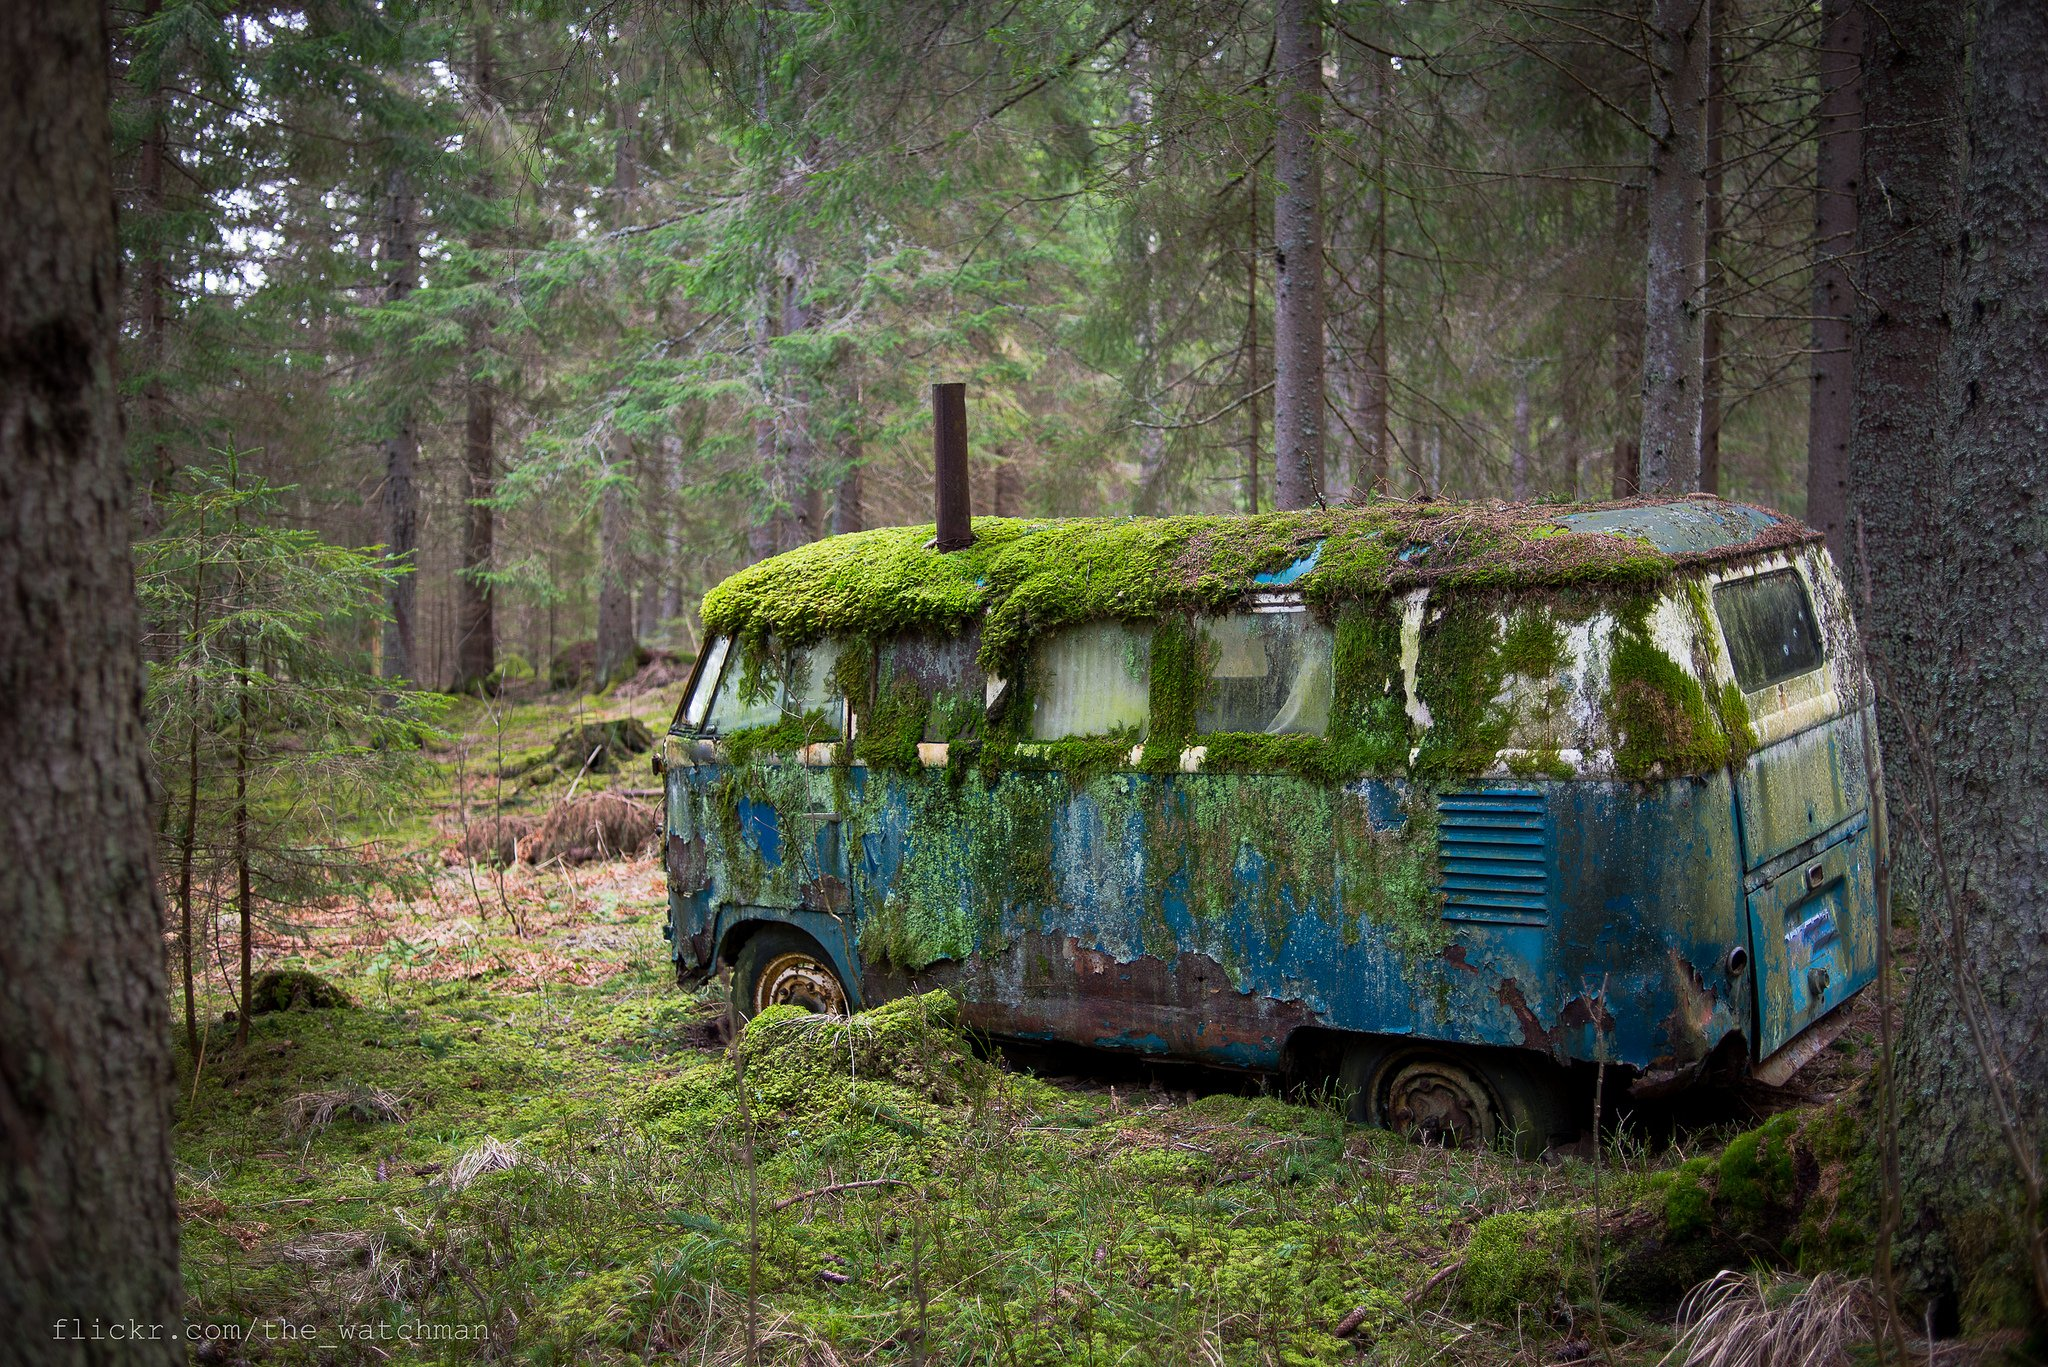 Old Mossy VW Bus That Was Once Someones Home Deep in the Forests of Norway wallpaper